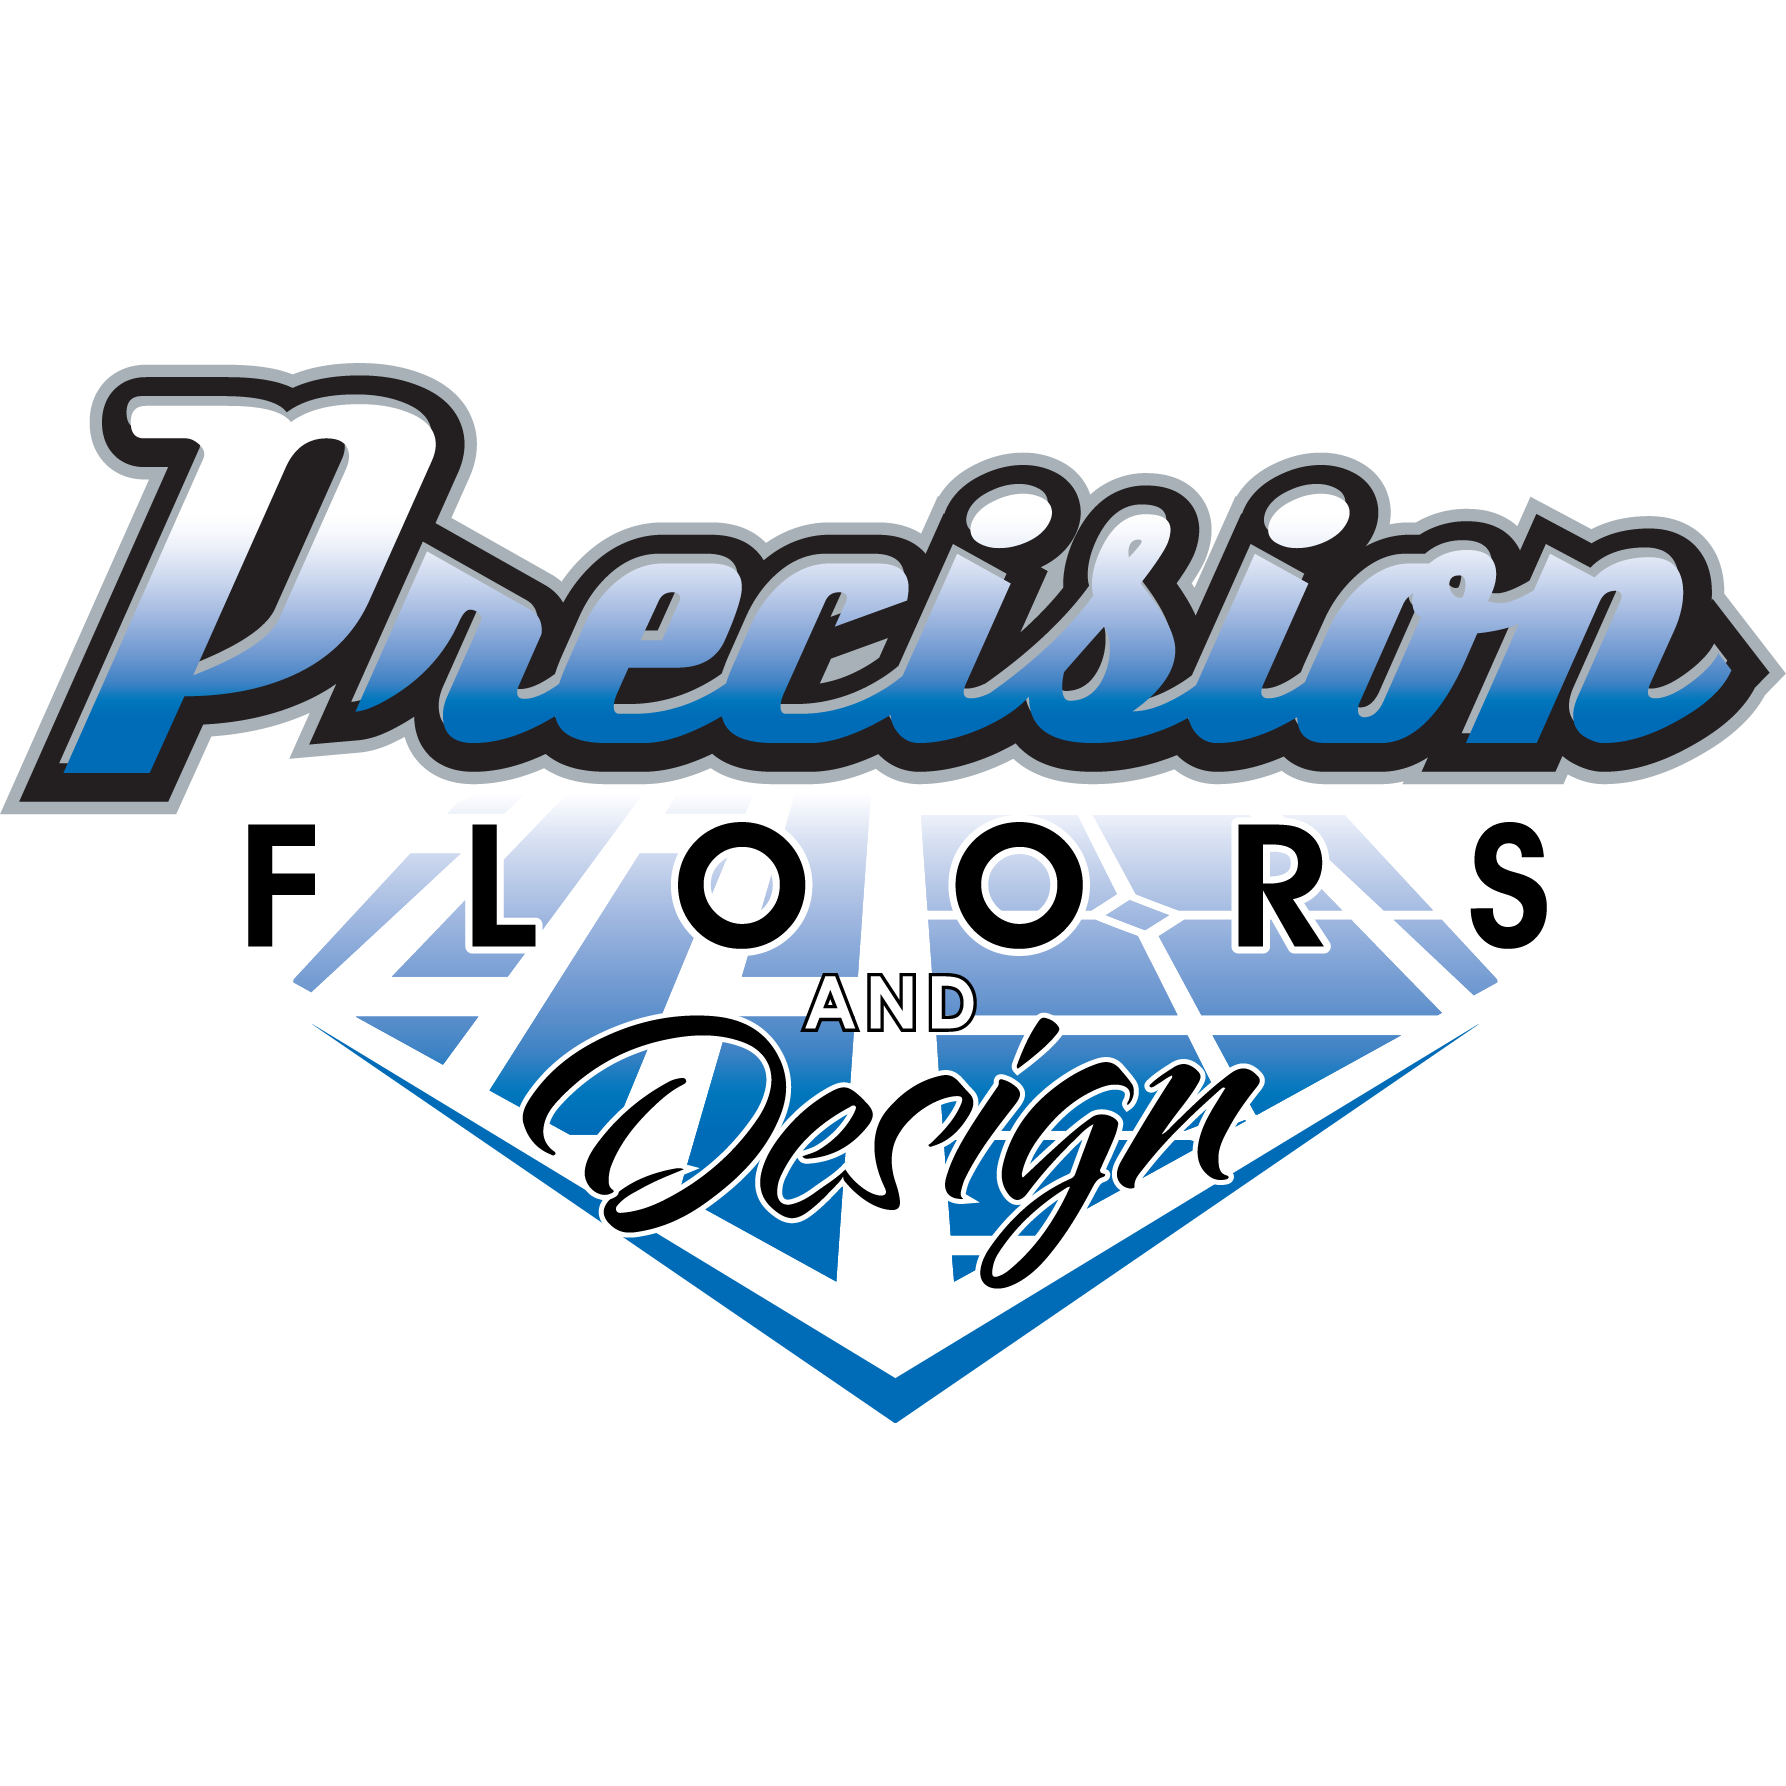 Precision Floors and Design image 18